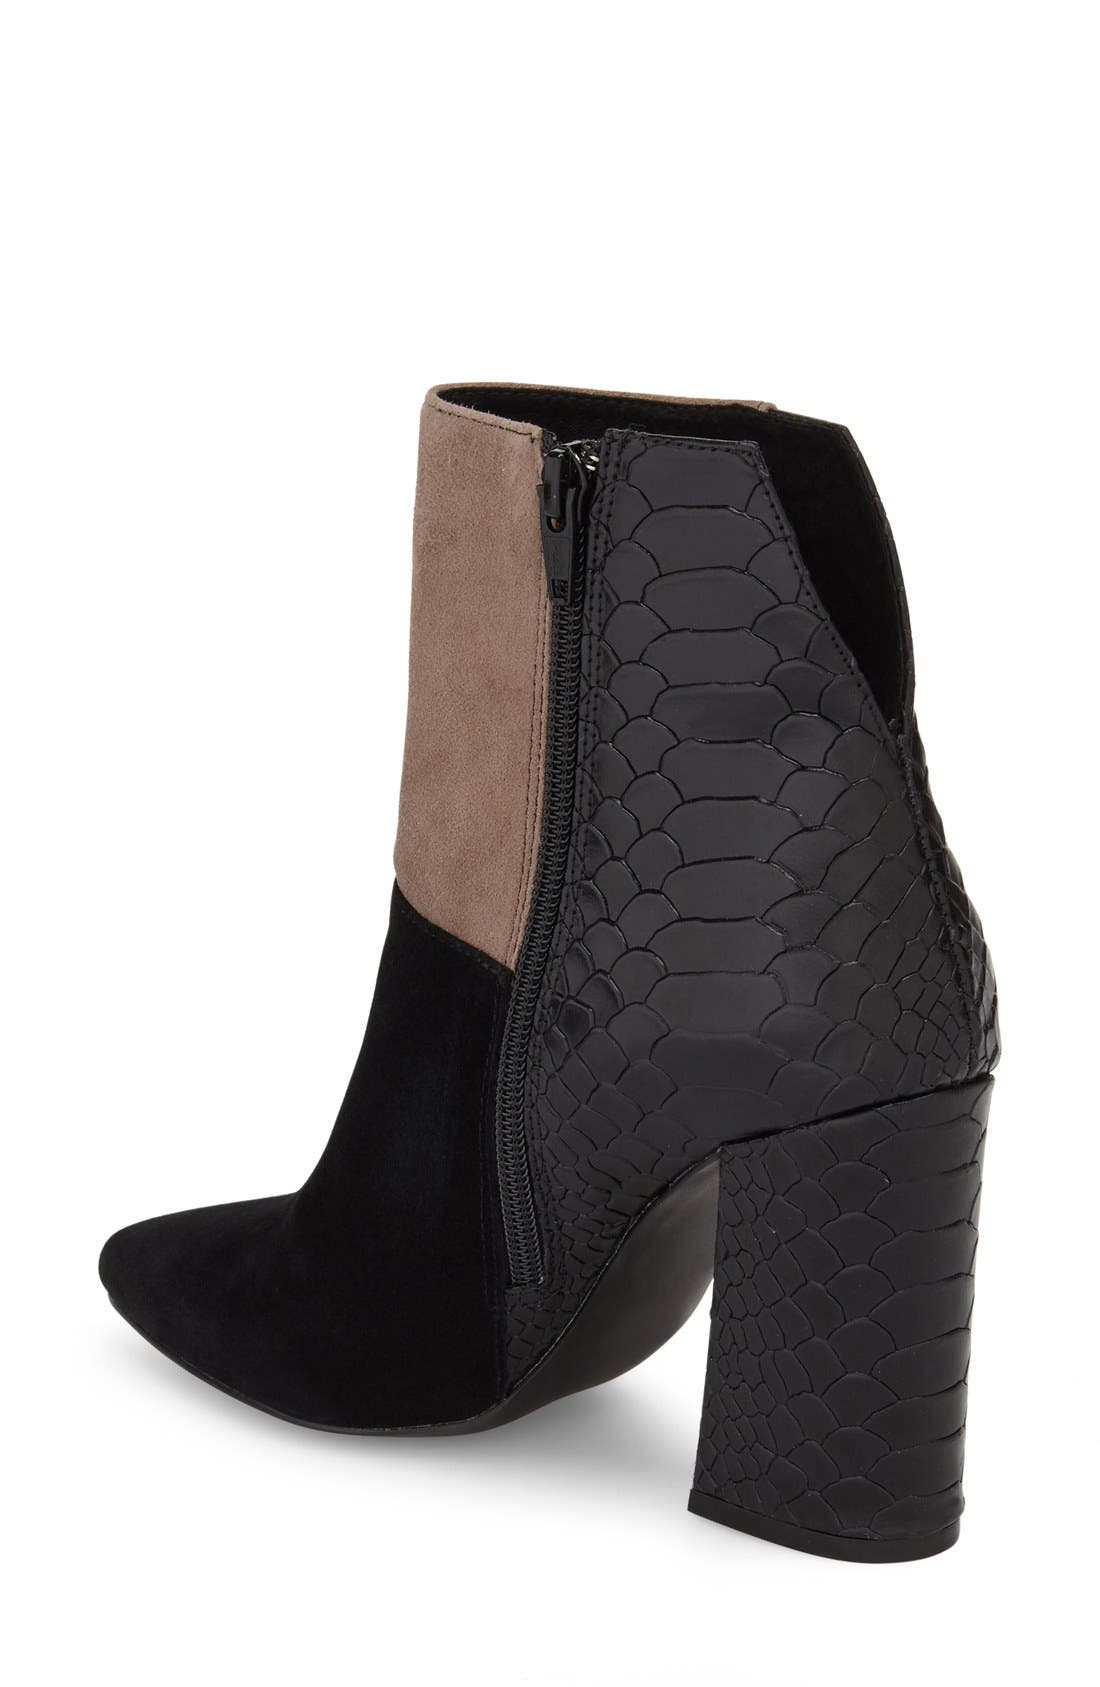 'Santorini' Colorblock Bootie,                             Alternate thumbnail 2, color,                             001